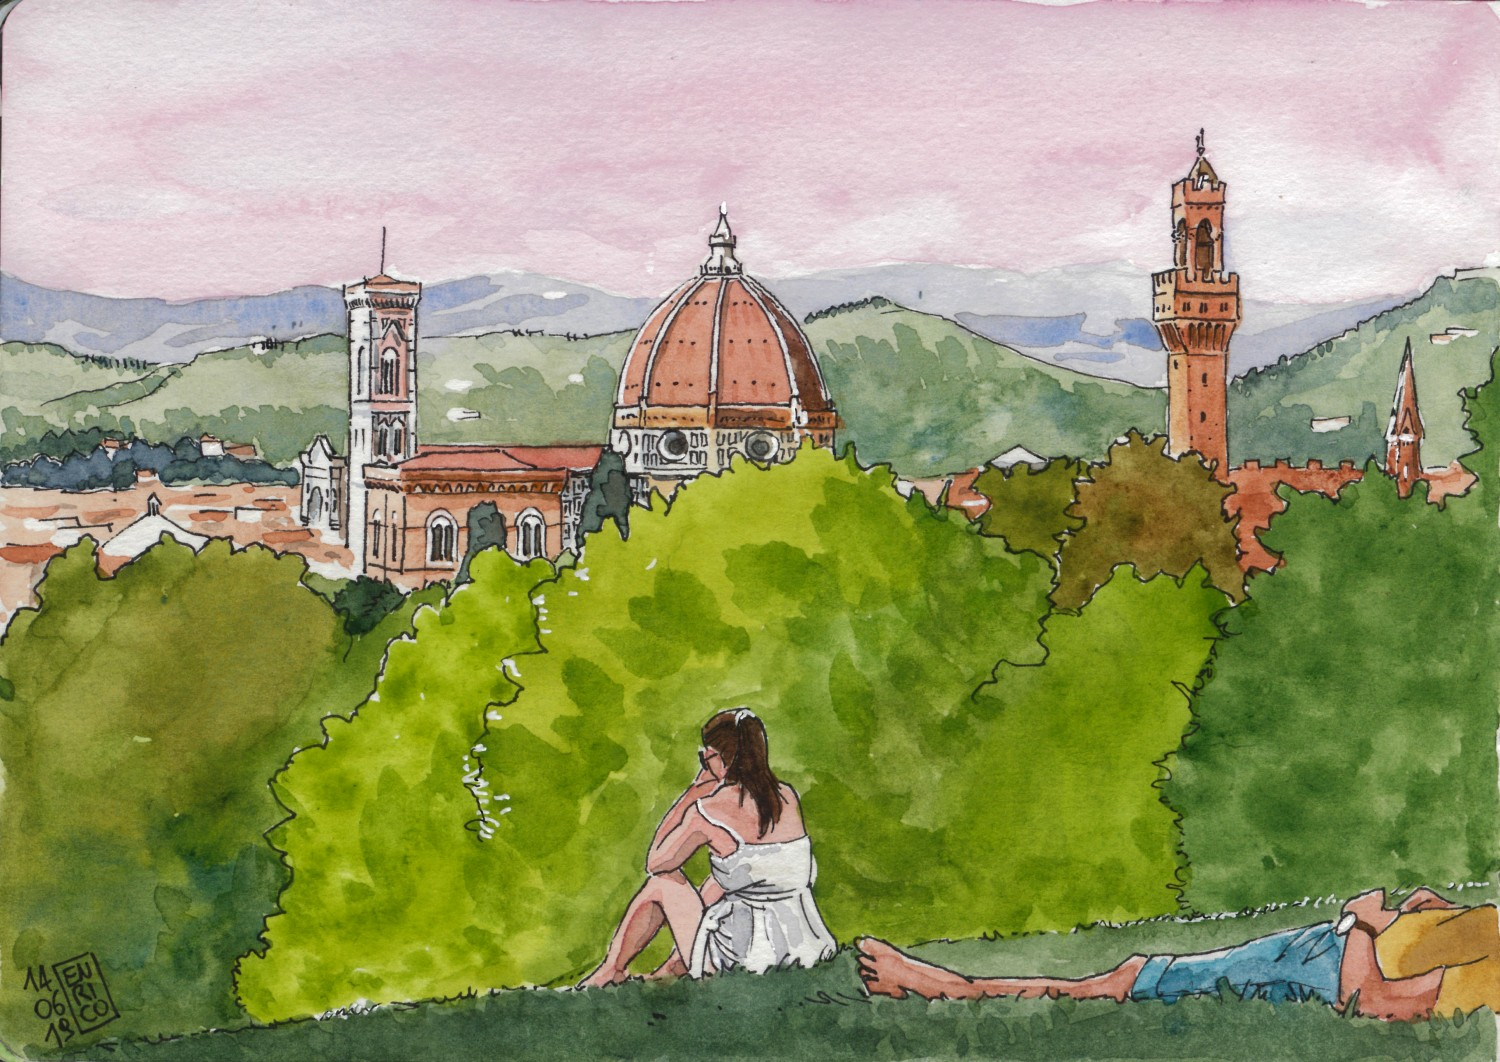 Firenze is truly beautiful, I never visited it before. The day was horridly hot, 38°C, and we went to the Boboli Gardens in search of fresh. The view of the city from there is great.